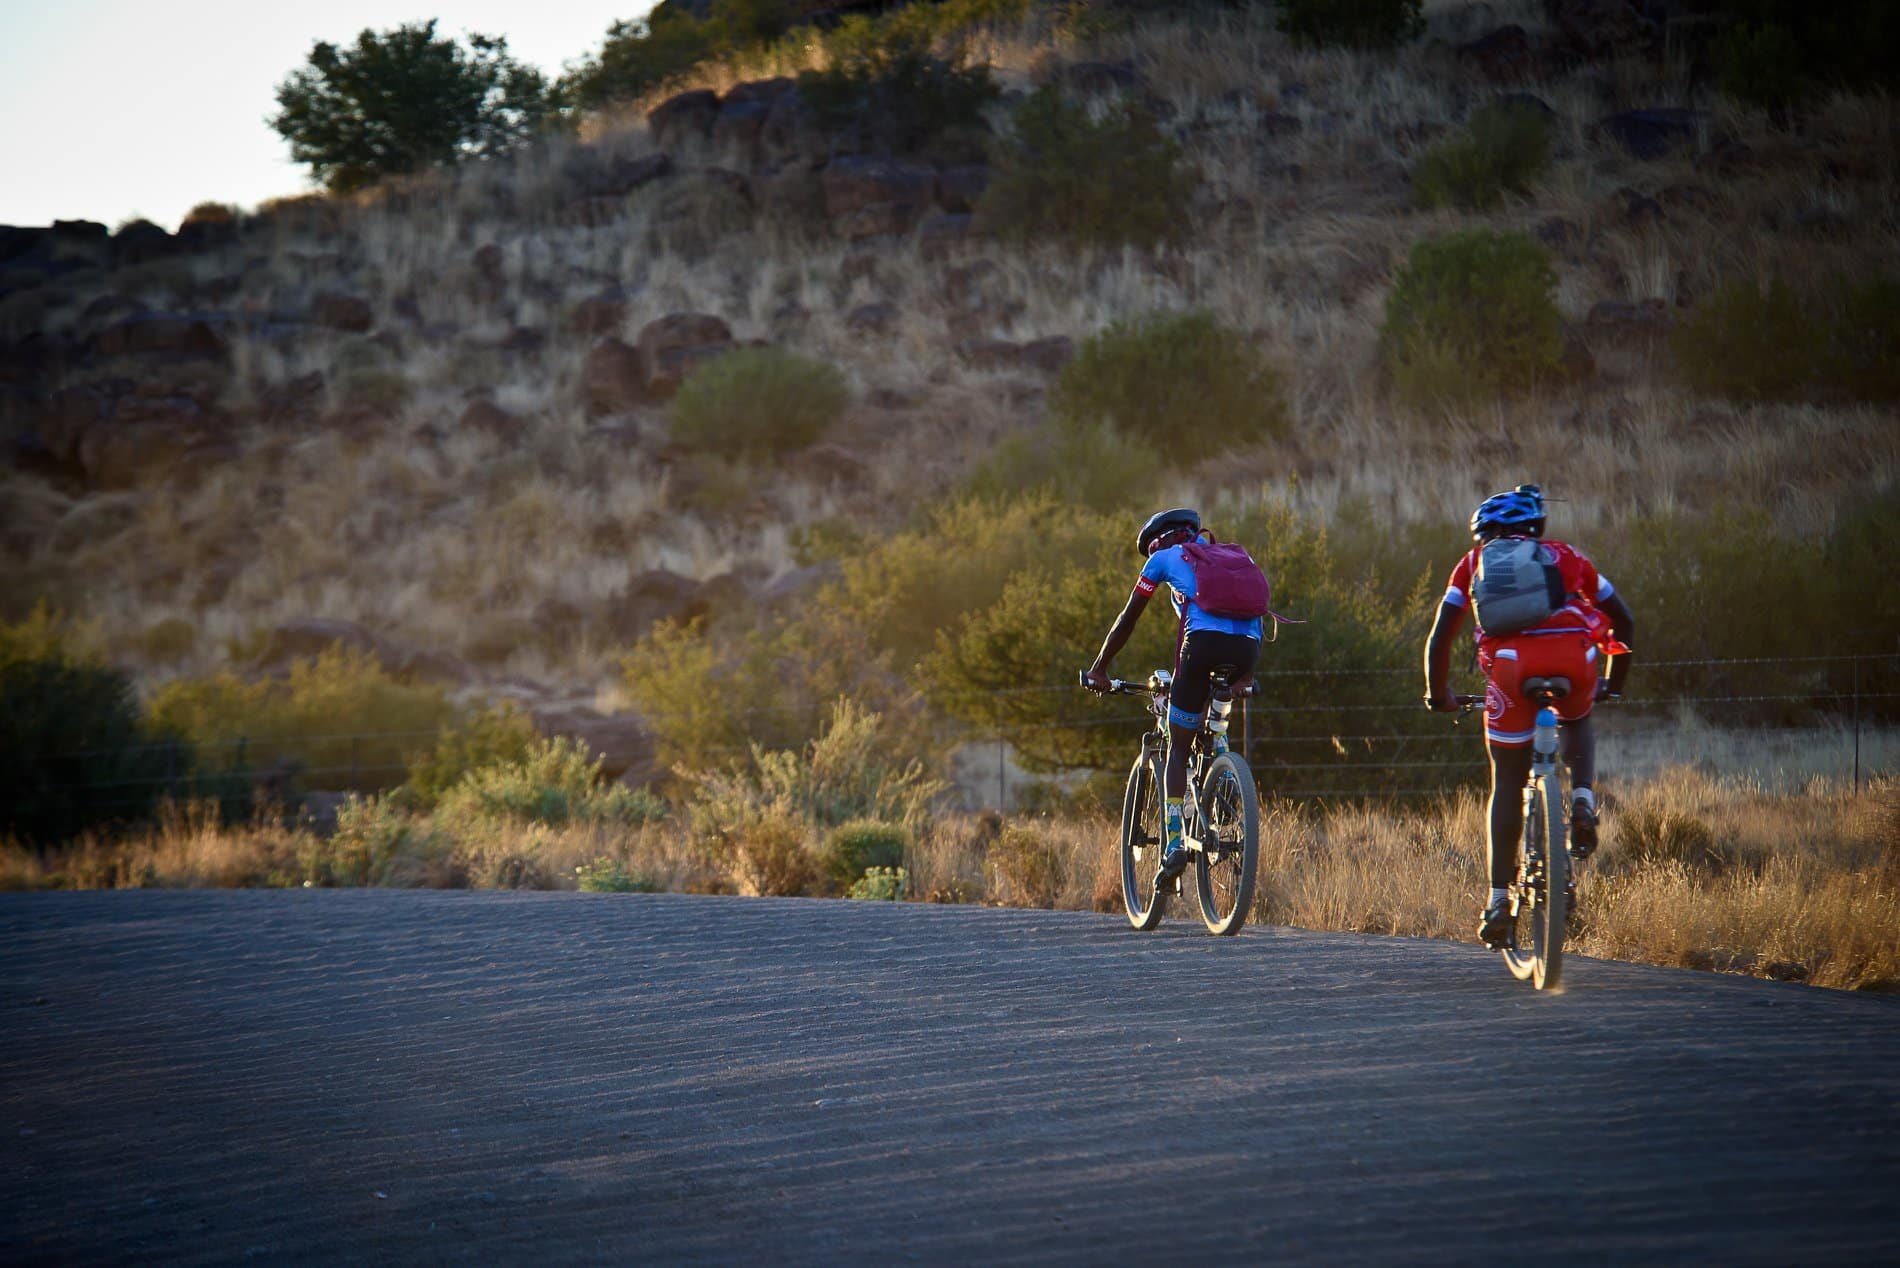 As the sun sets, many riders at the Munga will be looking for cooler weather to rack up some mileage. 31 degrees at midnight, though, might make that a challenge. Erik Vermeulen / The Munga 2019